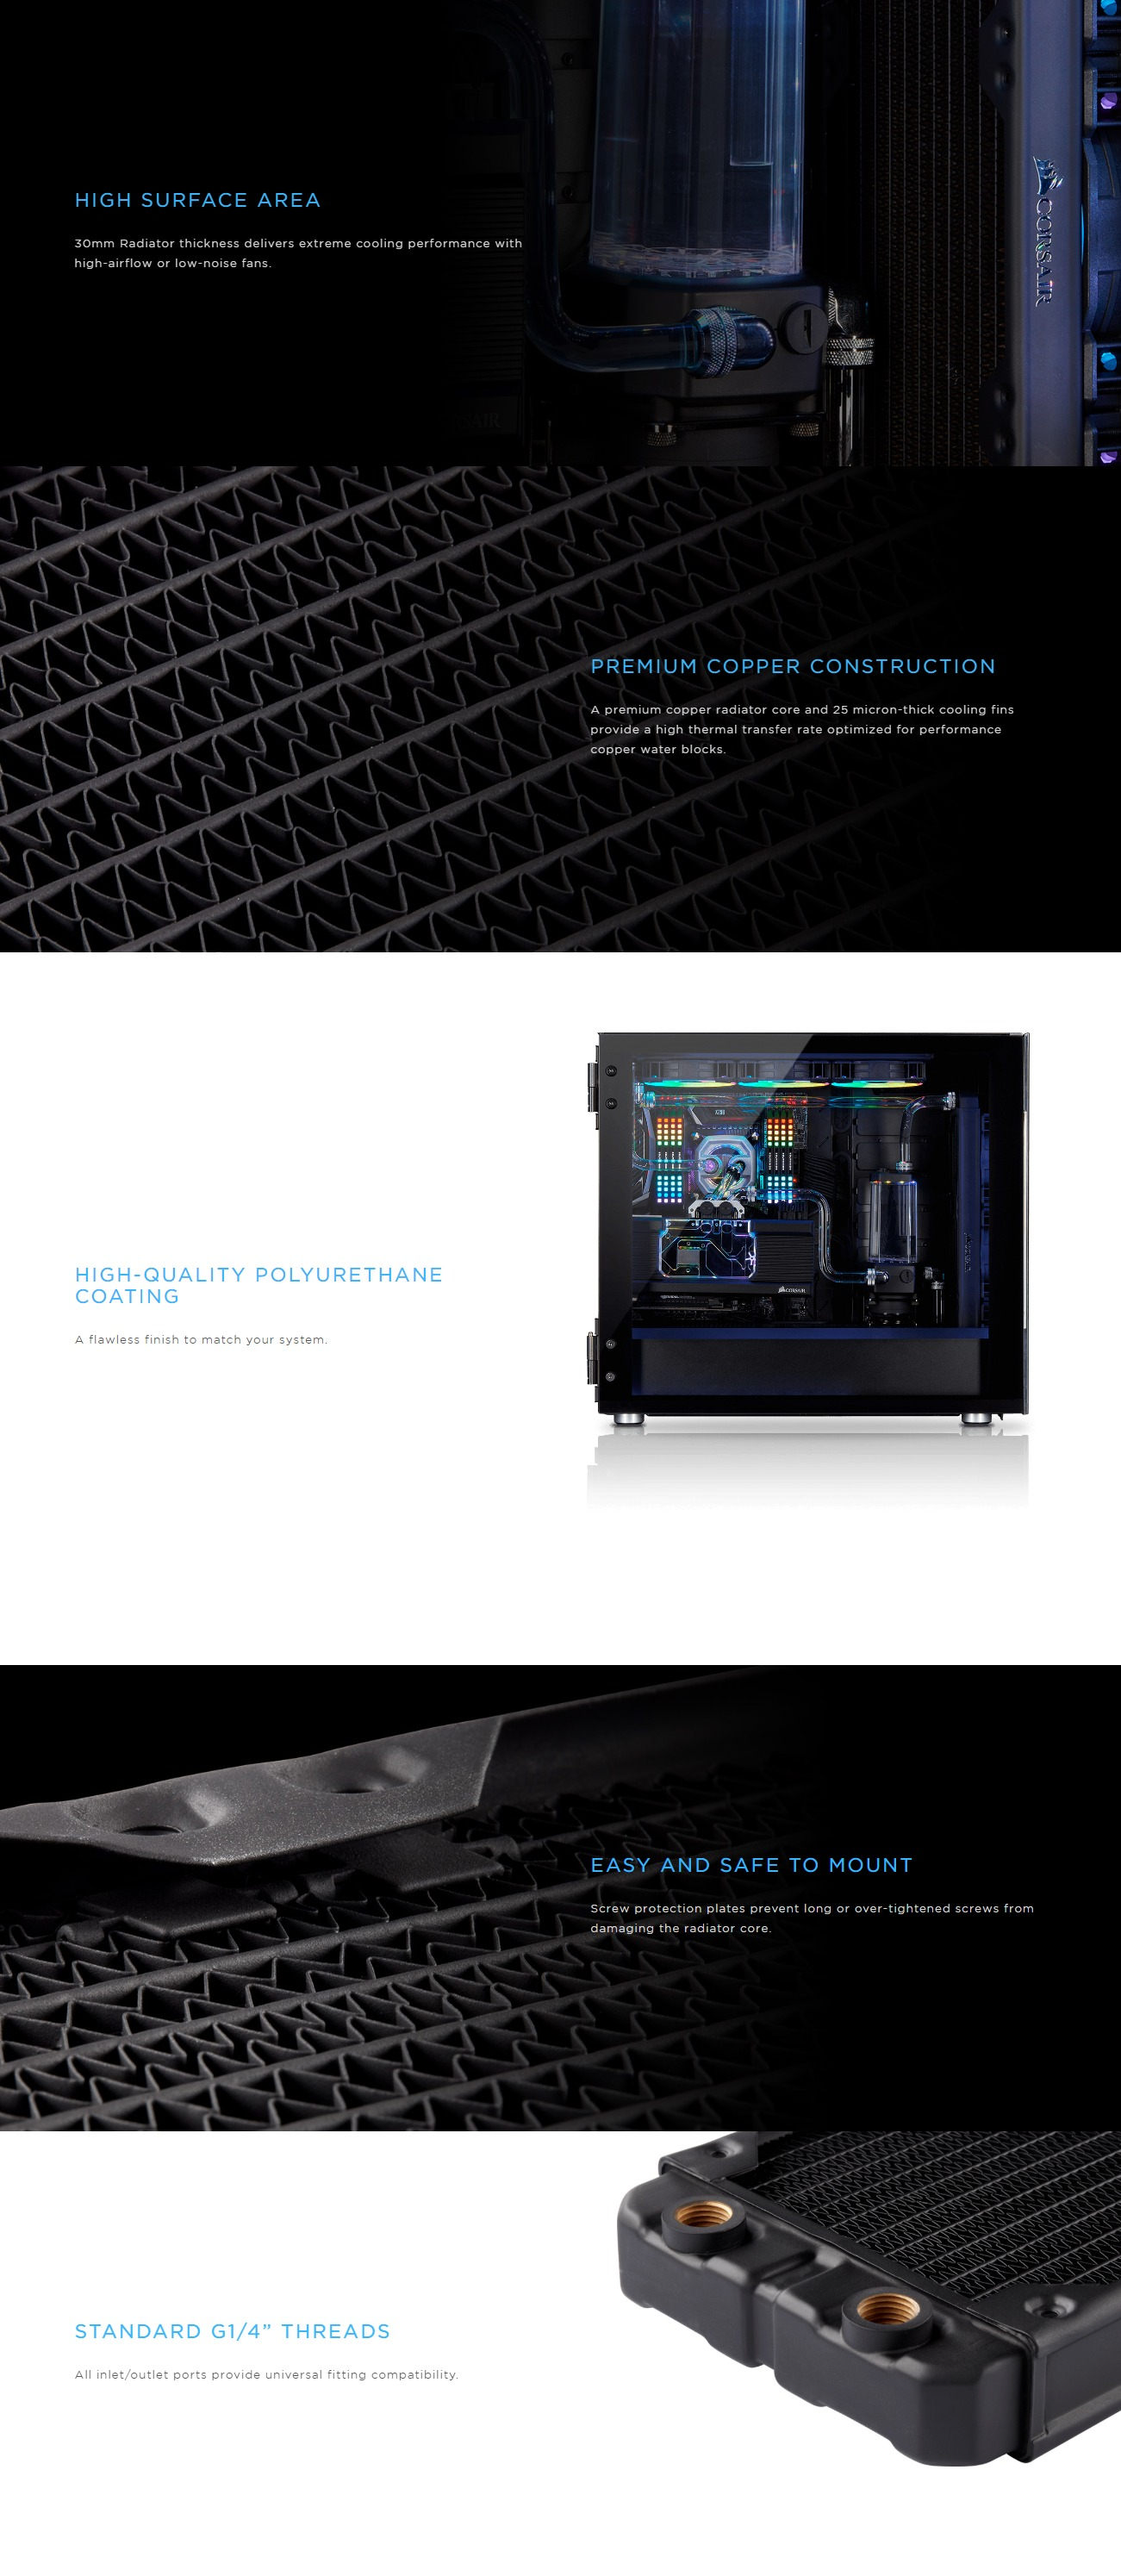 A large marketing image providing additional information about the product Corsair Hydro X Series XR5 420mm Radiator - Additional alt info not provided